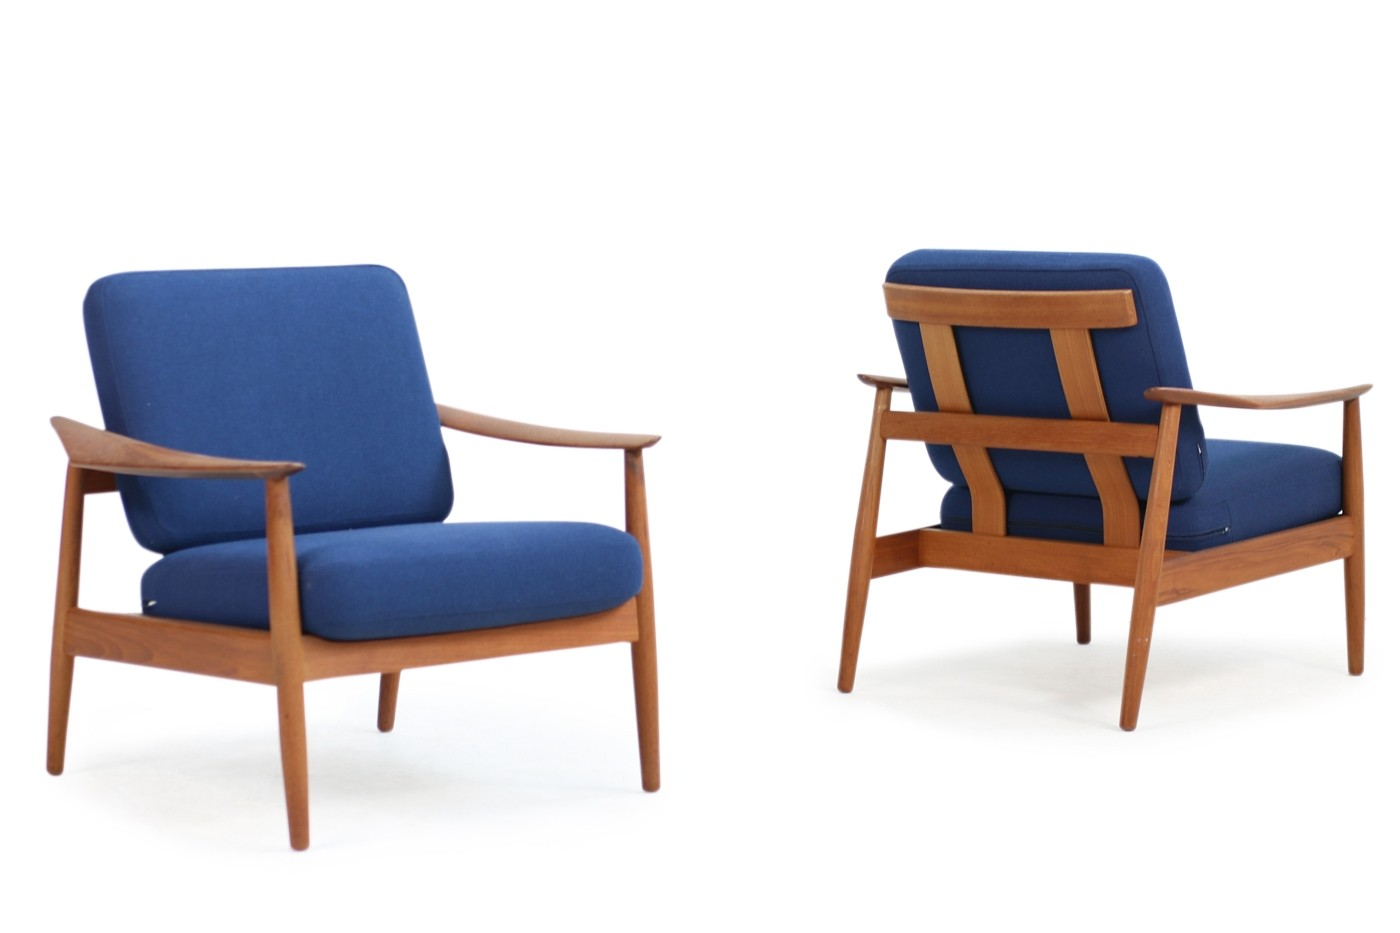 Teak Sessel Danish Arne Vodder 1960s Teak Easy Chairs Mod. 164 Danish Modern